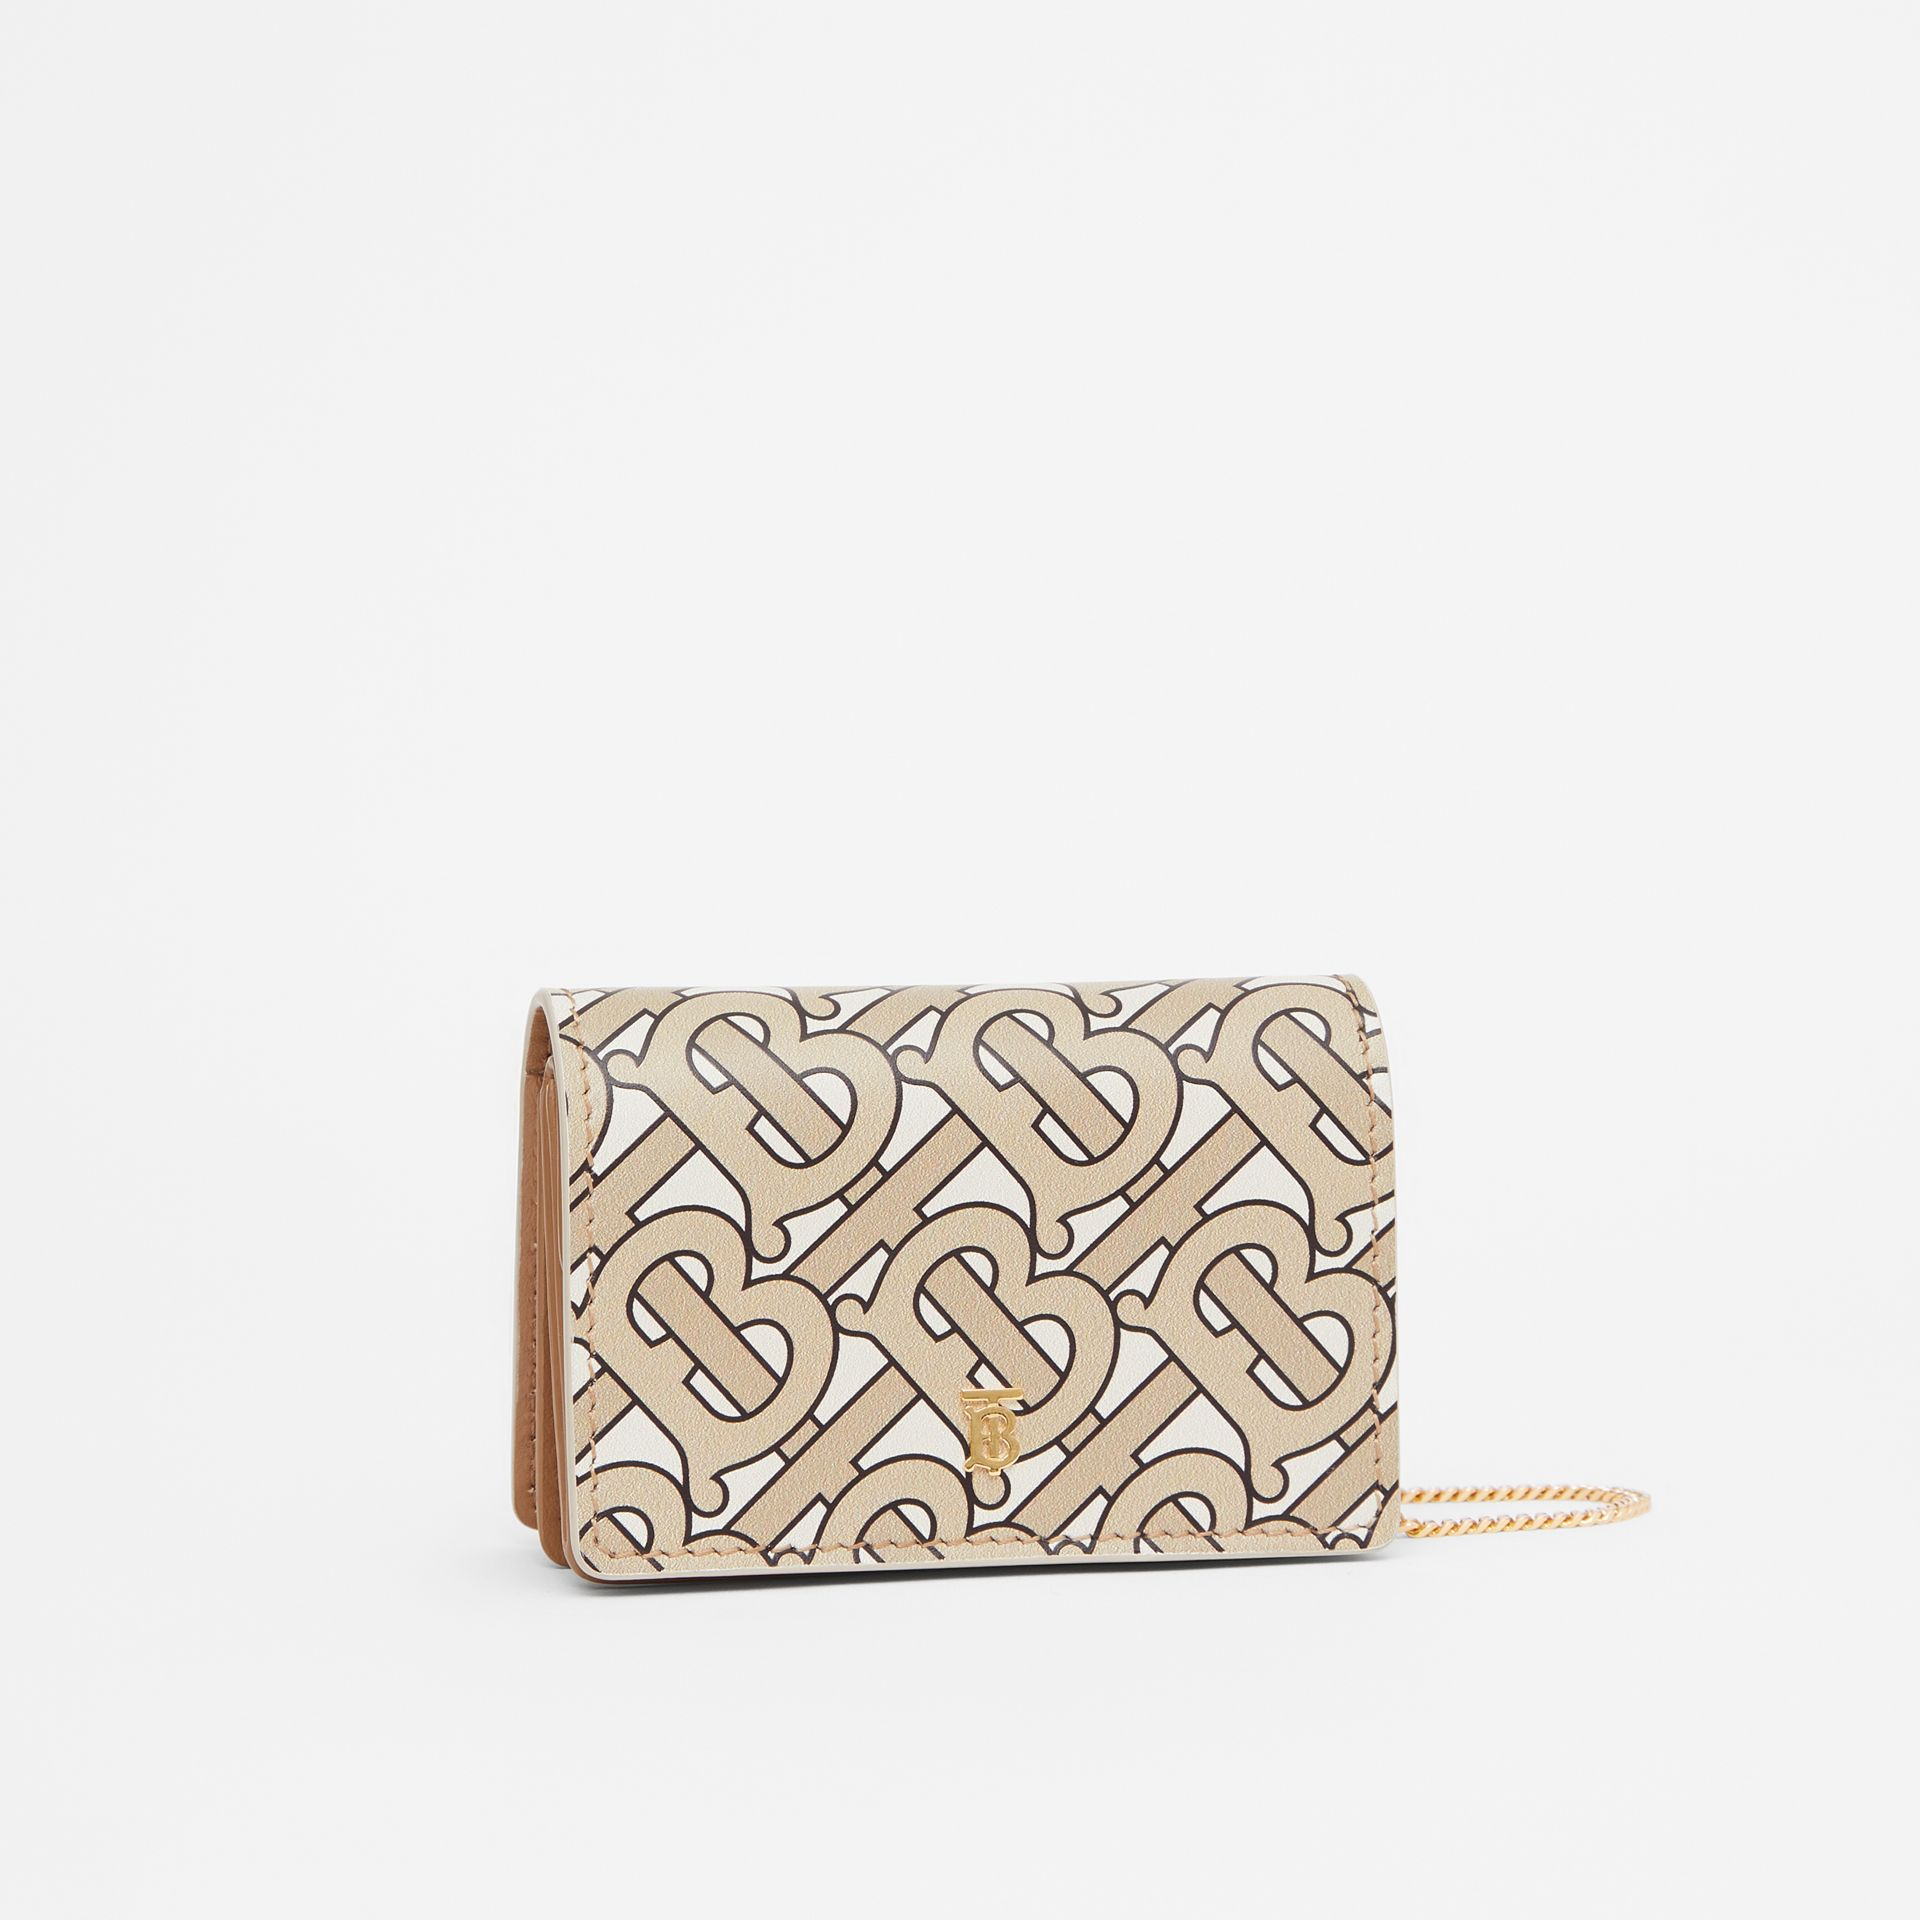 Monogram Print Card Case with Detachable Strap in Beige - Women | Burberry - gallery image 6